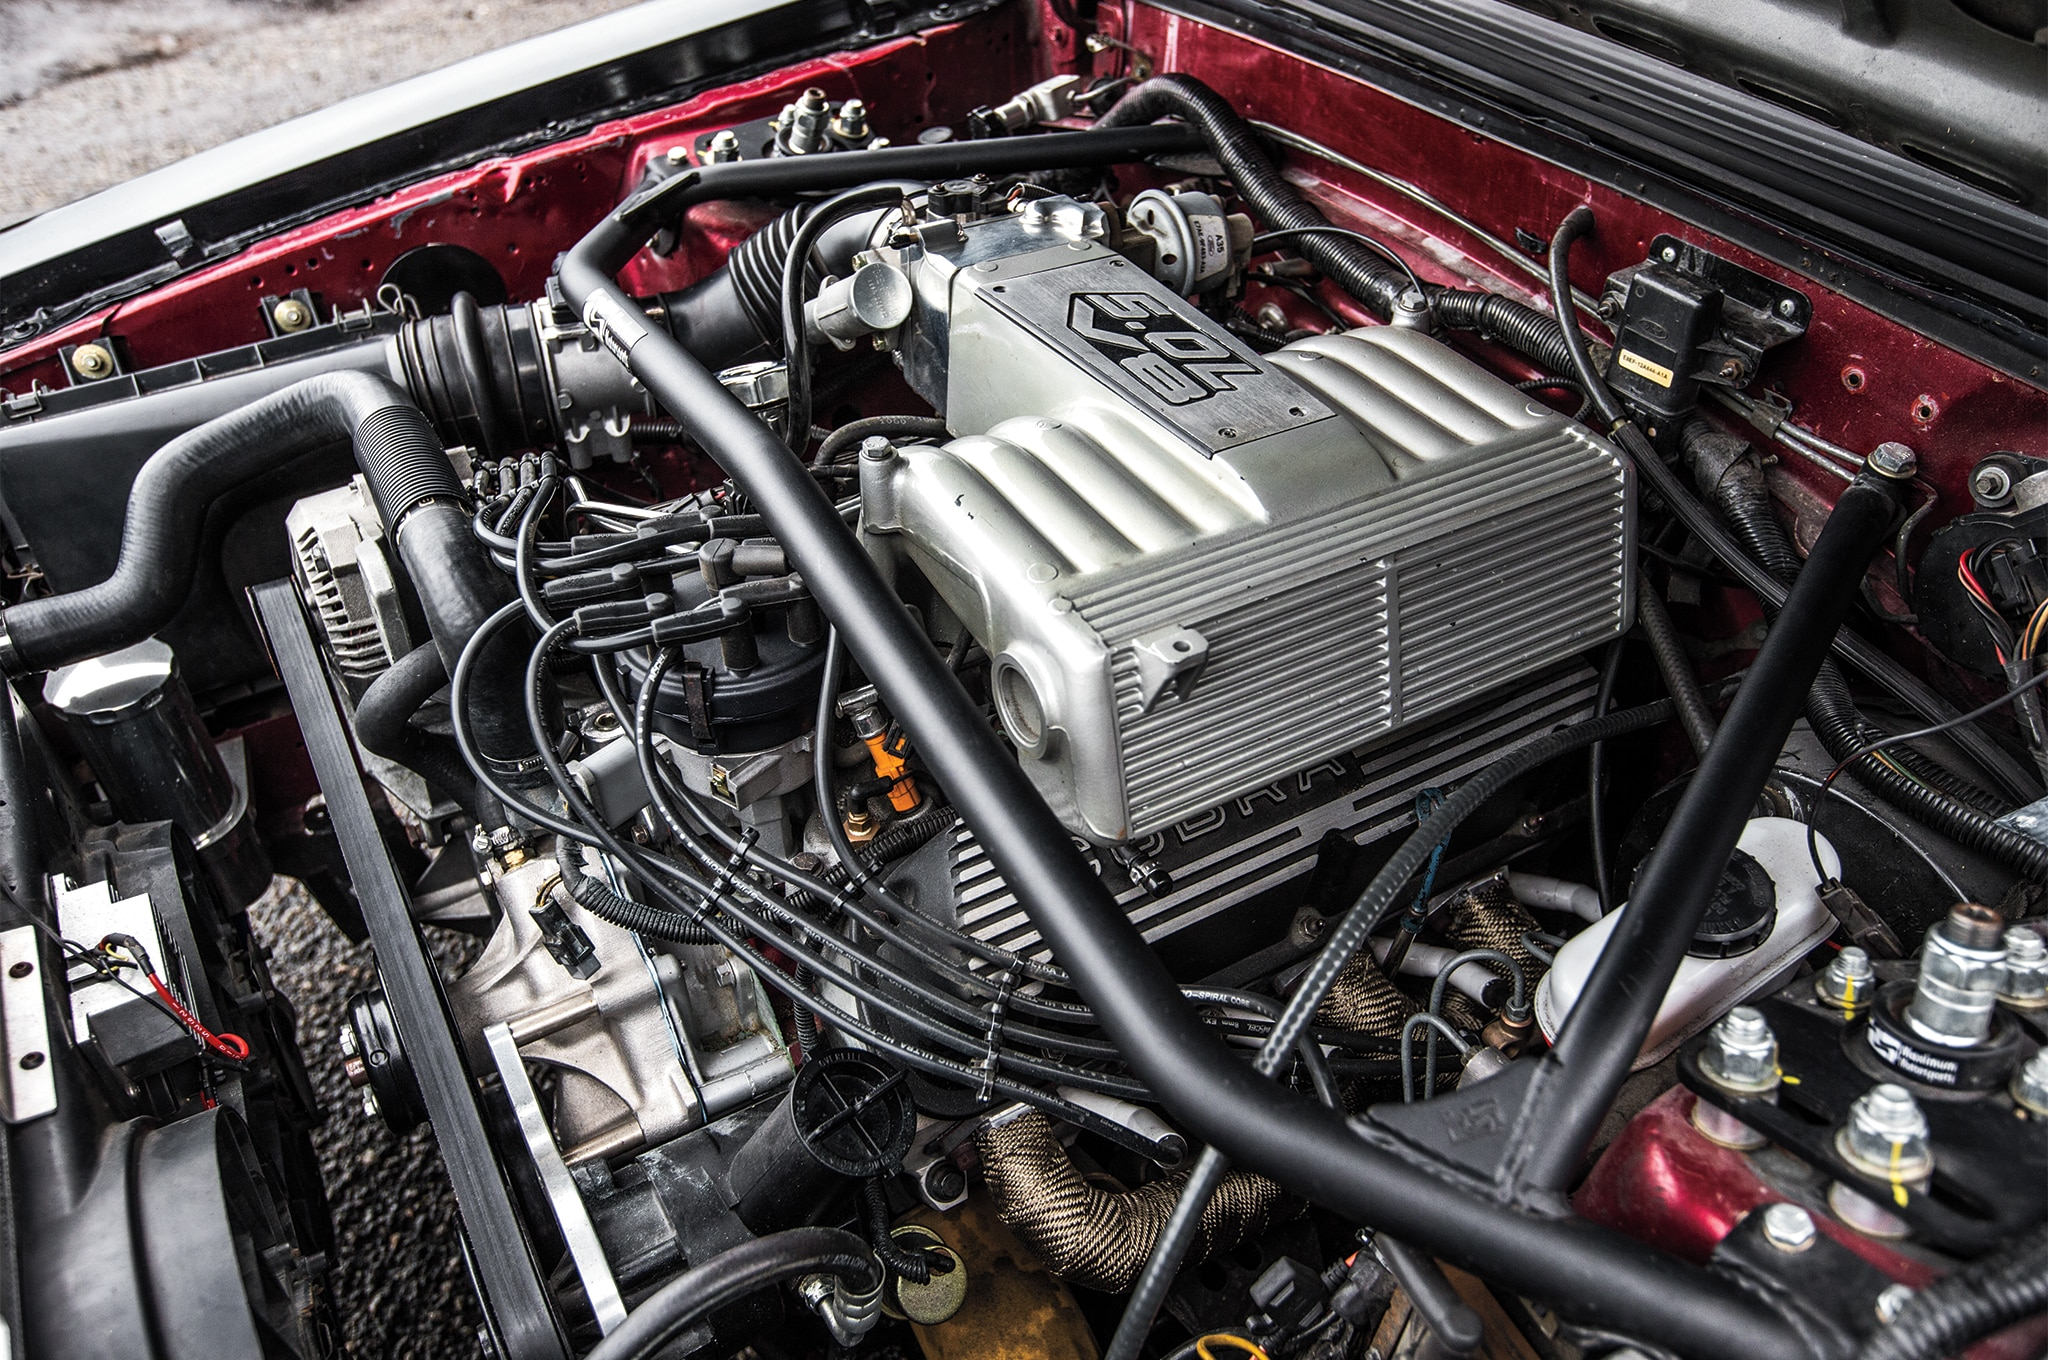 1988 Ford Mustang LX 5 0 SSP Engine